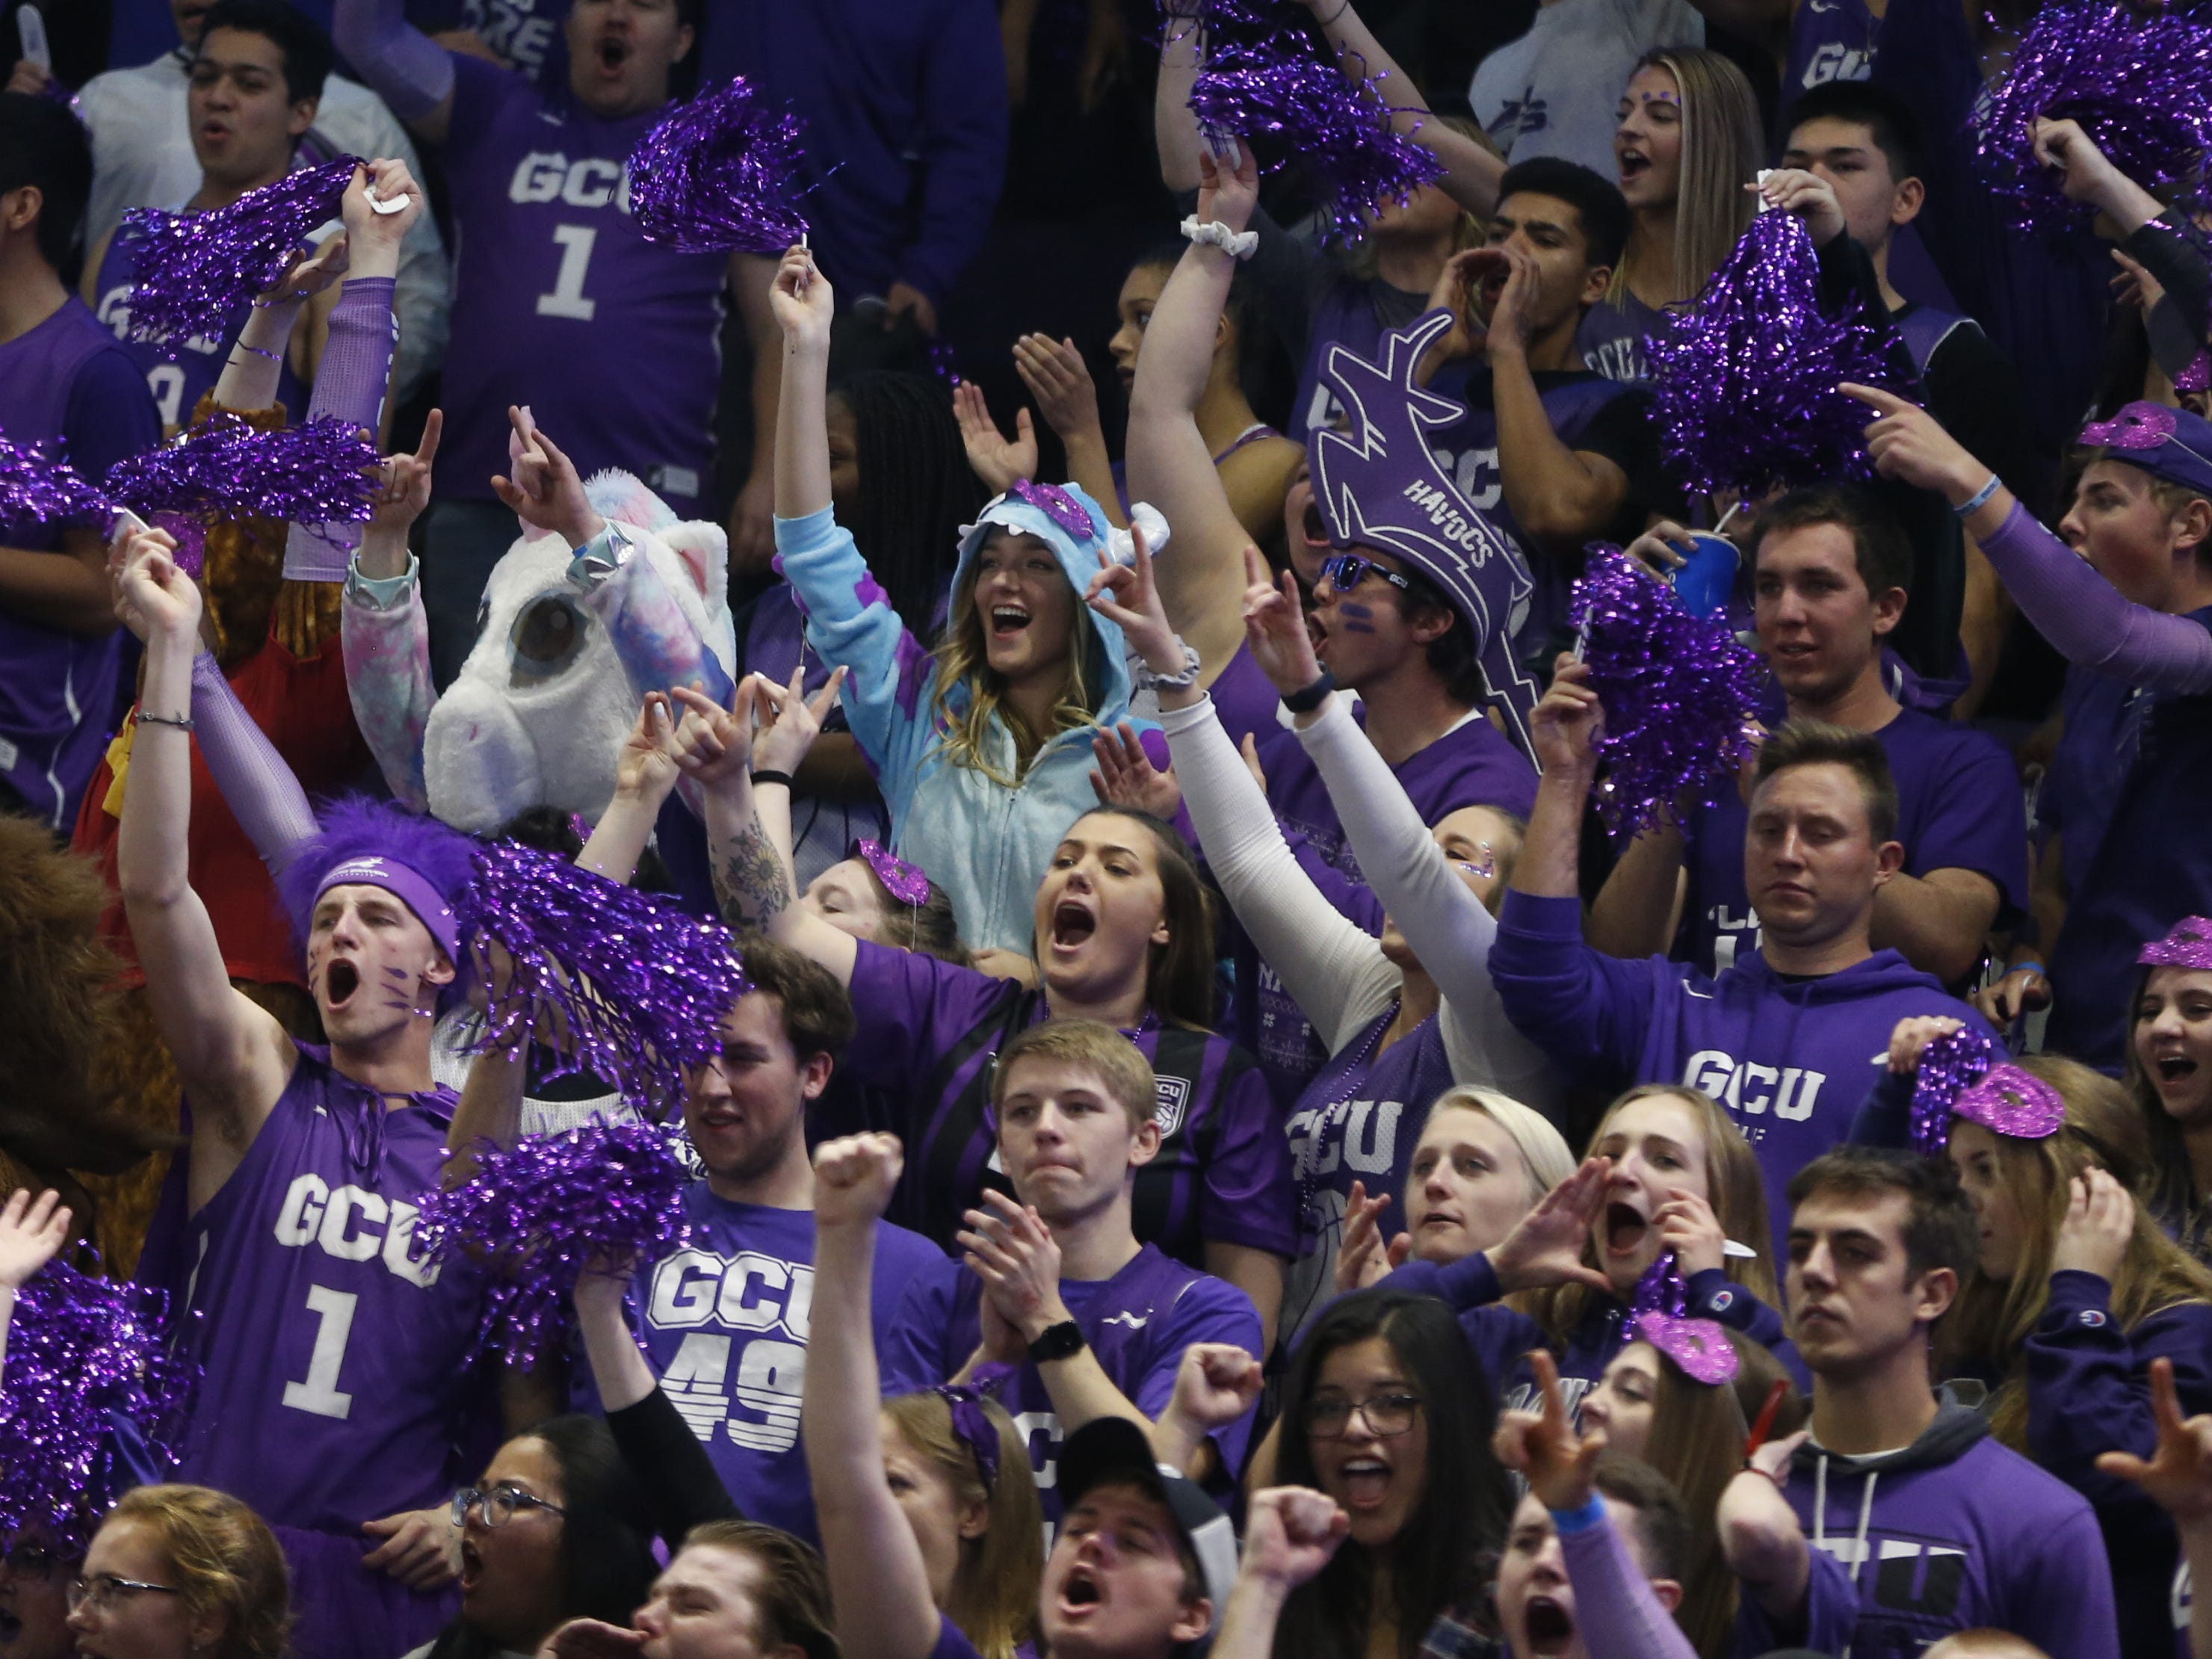 GCU fans react to a basket against New Mexico State during the first half at Grand Canyon University Arena in Phoenix, Ariz. on February 9, 2019.